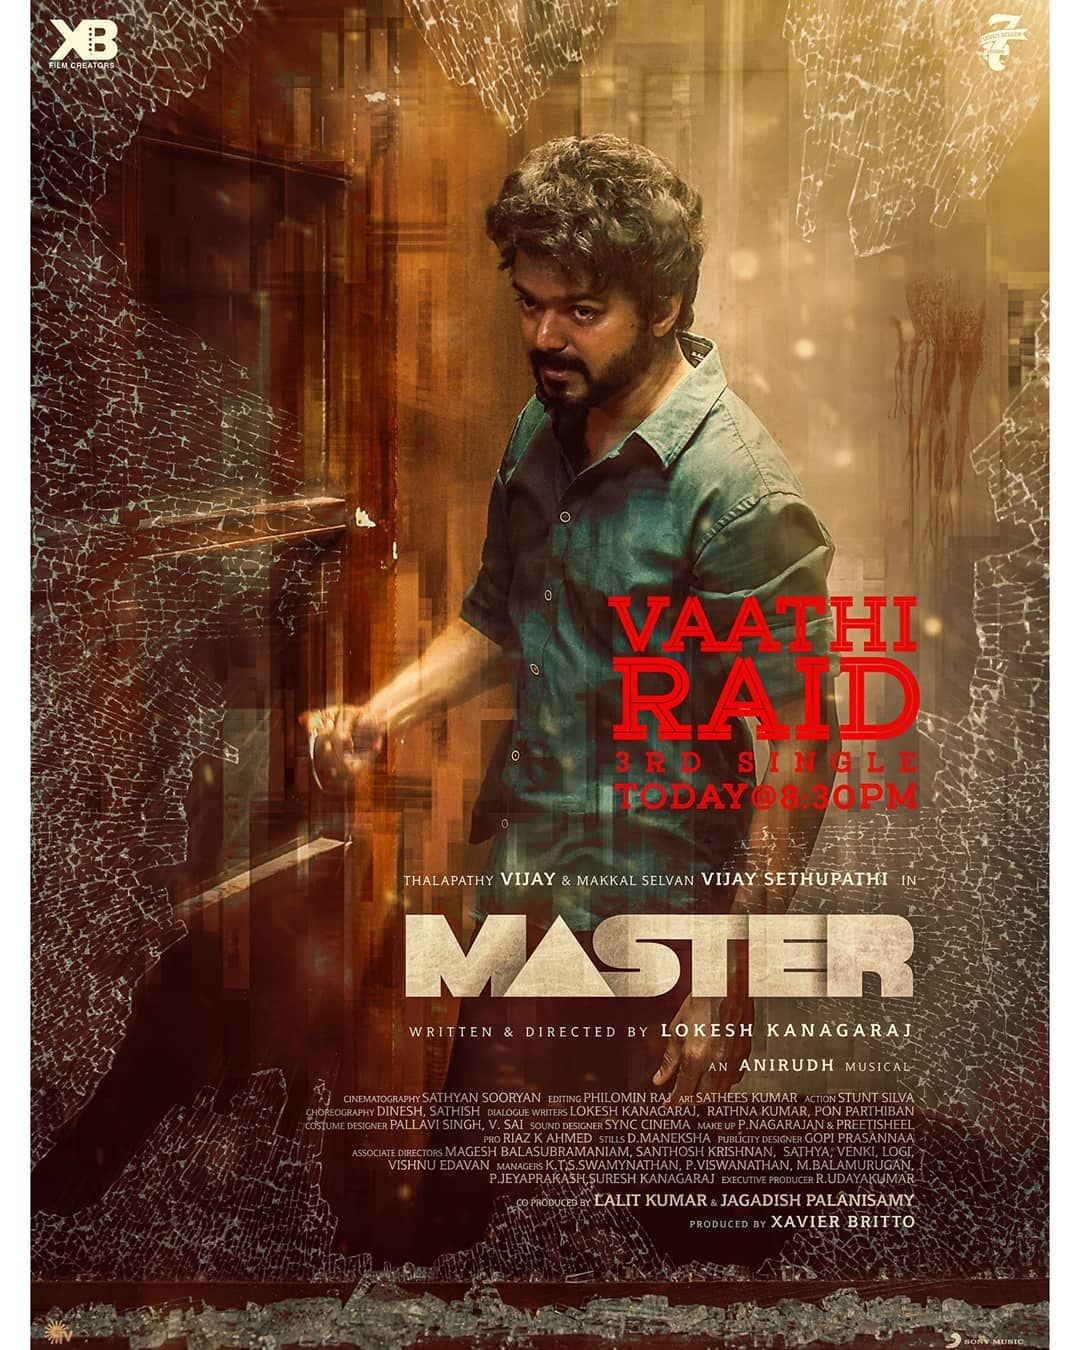 Nanba Set Your Alarms For 8 30 Pm Today The Massive Vaathiraid From Master Coming Your Way Master Hollywood Songs Tamil Songs Lyrics Vijay Actor